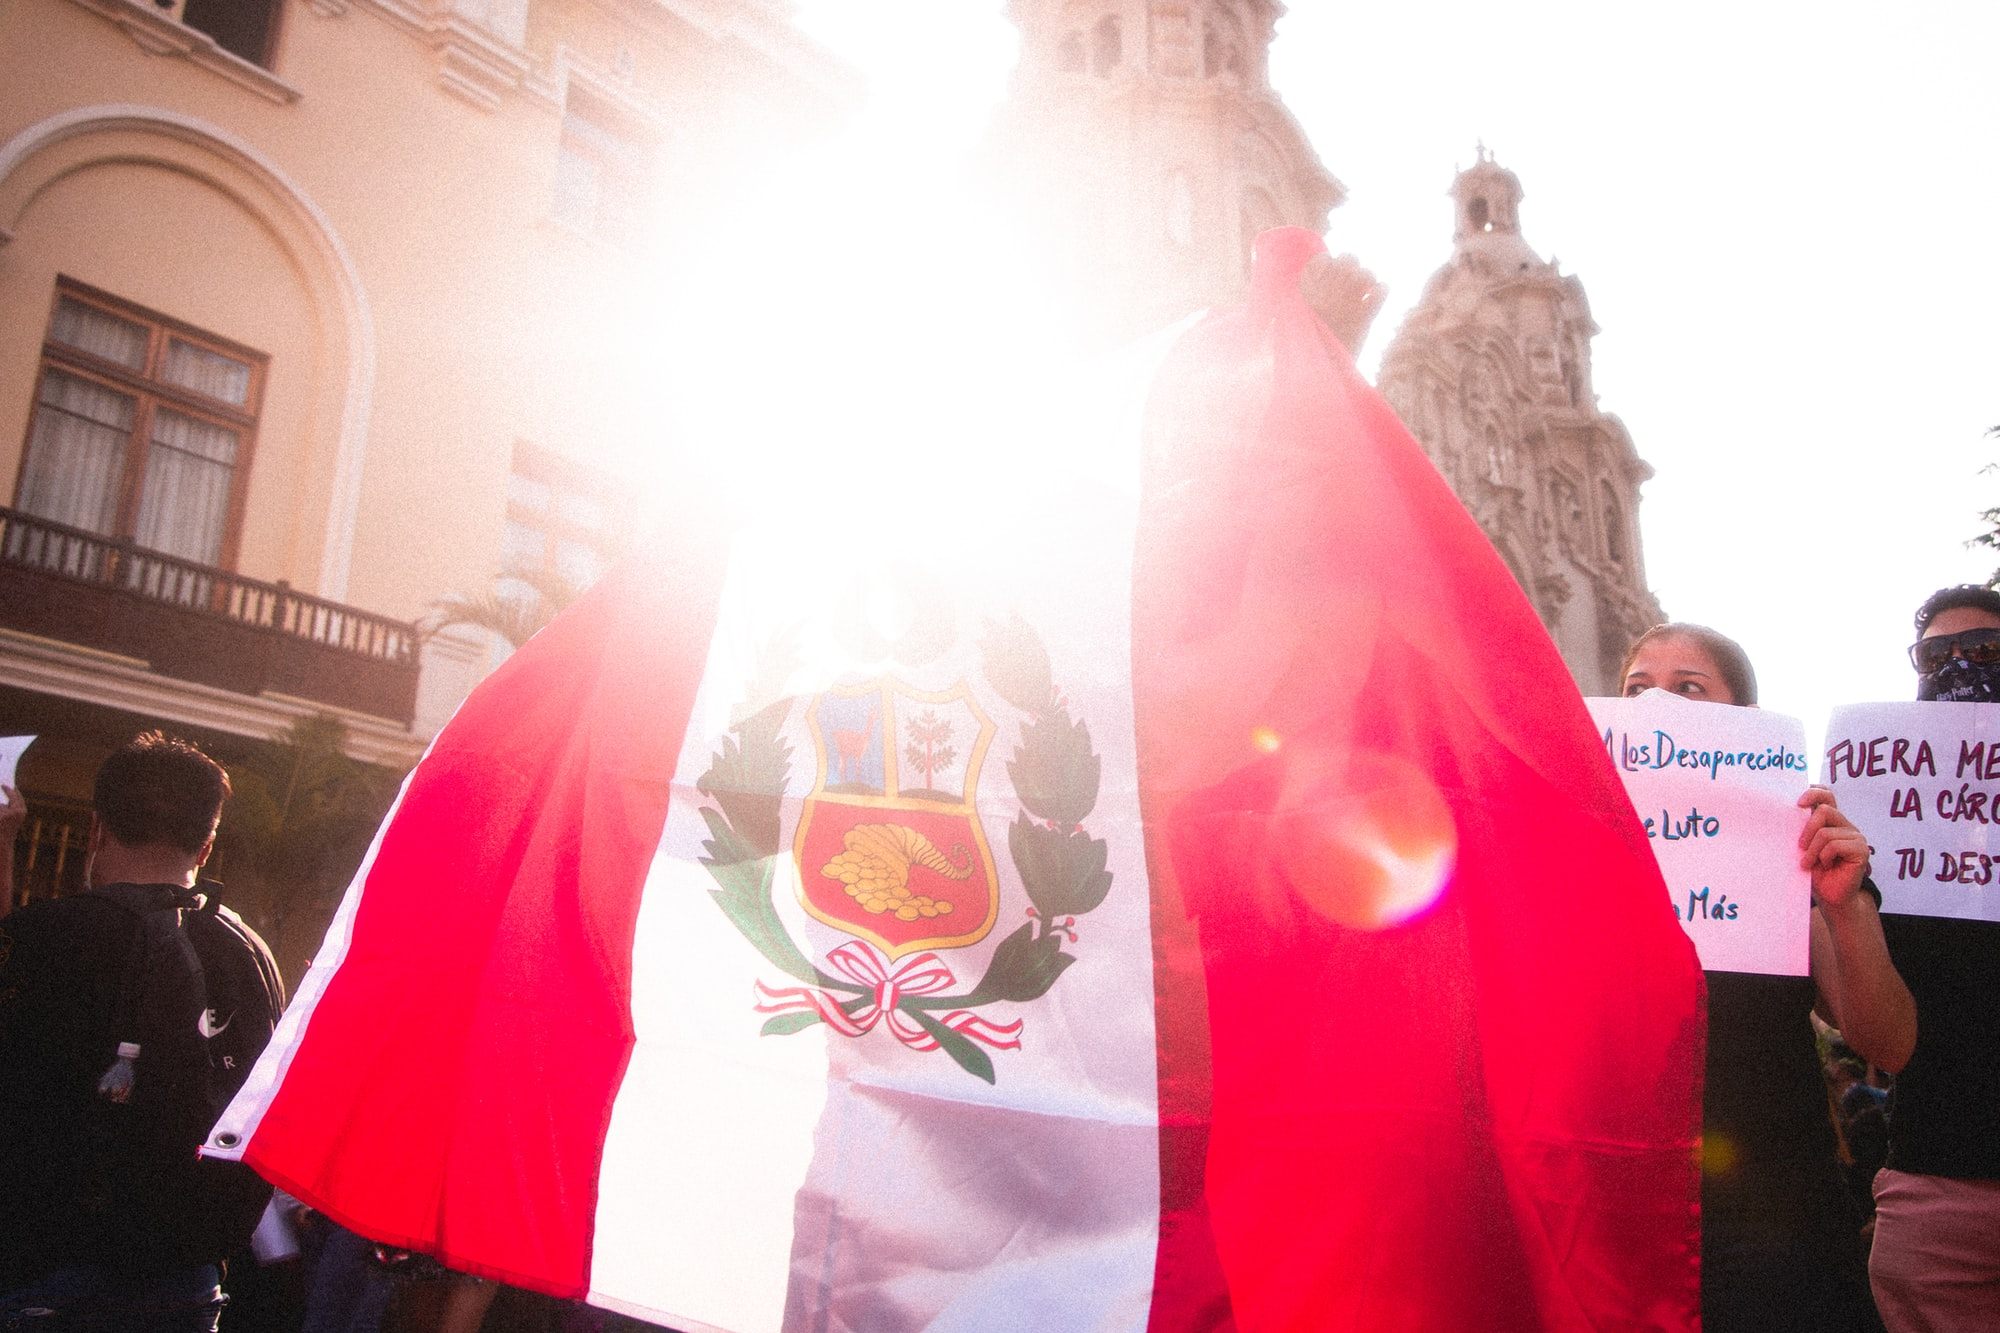 Populism and Peru: How a Dangerous Ideology Caused the Country's Recent Instability